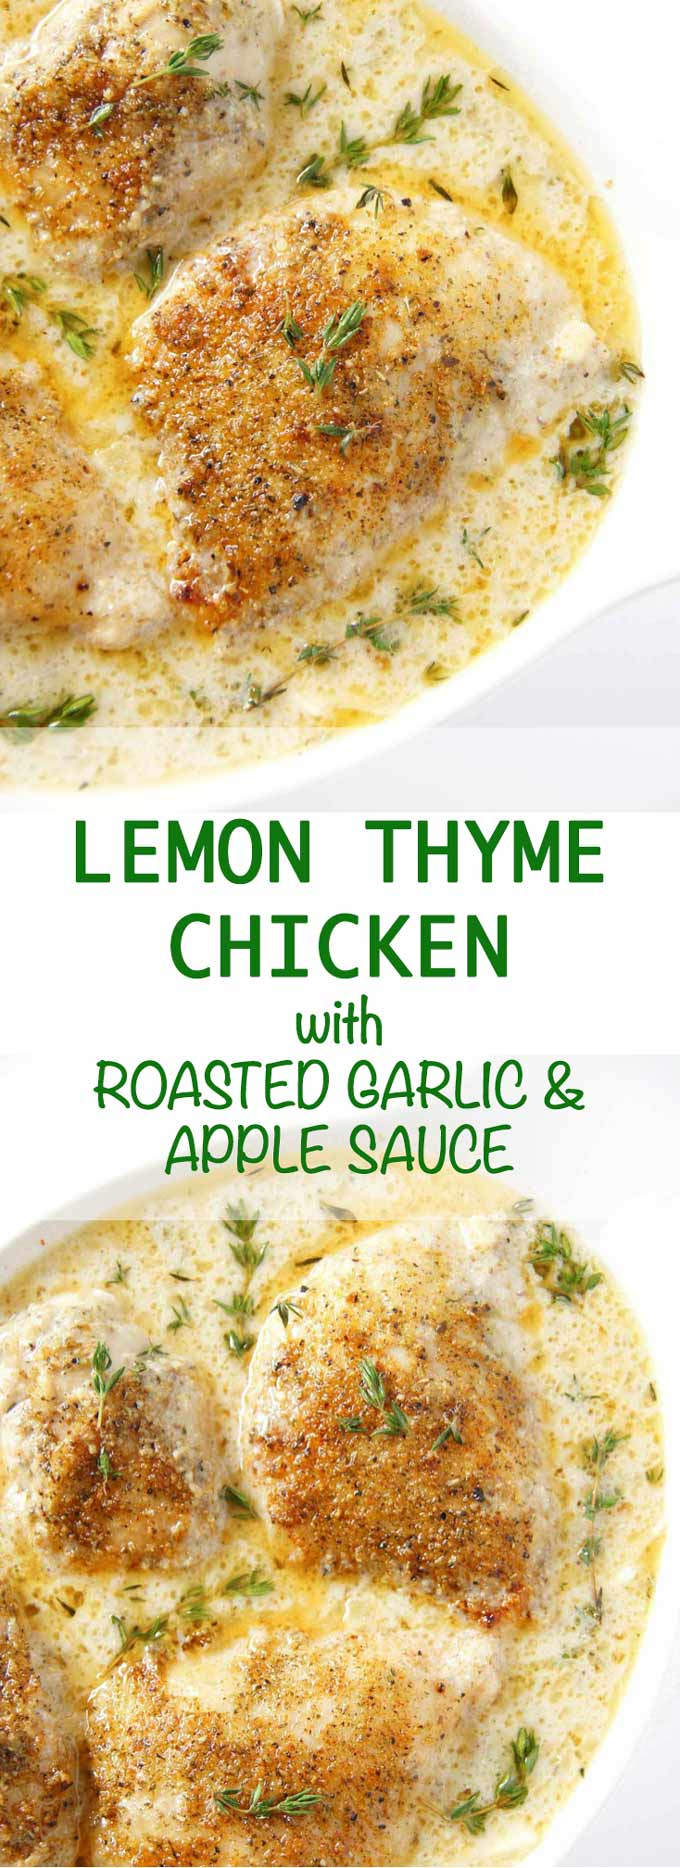 Easy Lemon Thyme Chicken with Roasted Garlic and Apple Sauce is an insanely moorish indulgence - perfect meal for two, ready in 40 min.